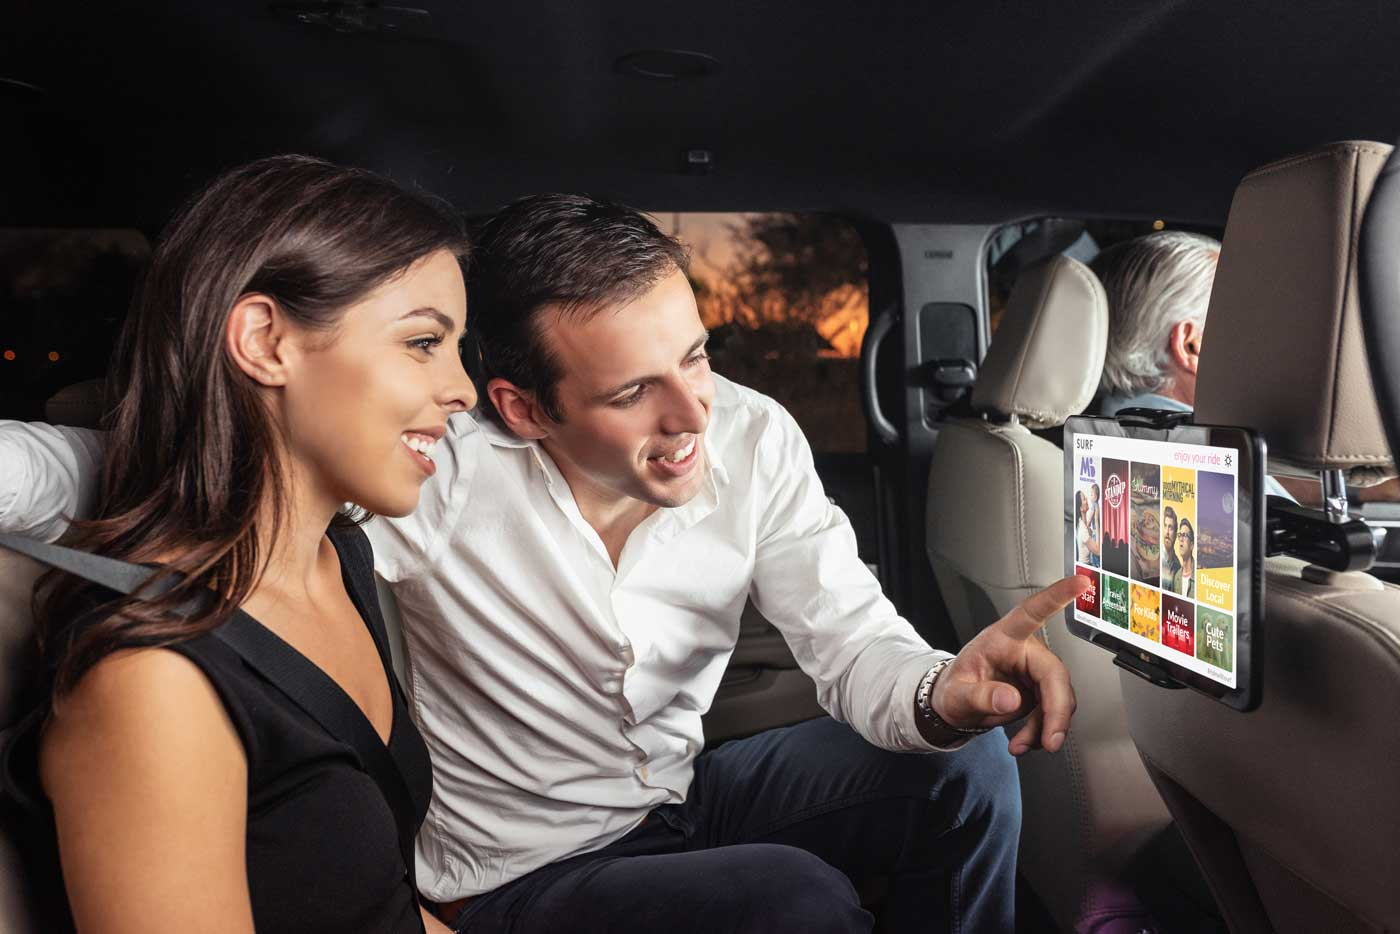 Surf places interactive tablets in rideshare cars across the country